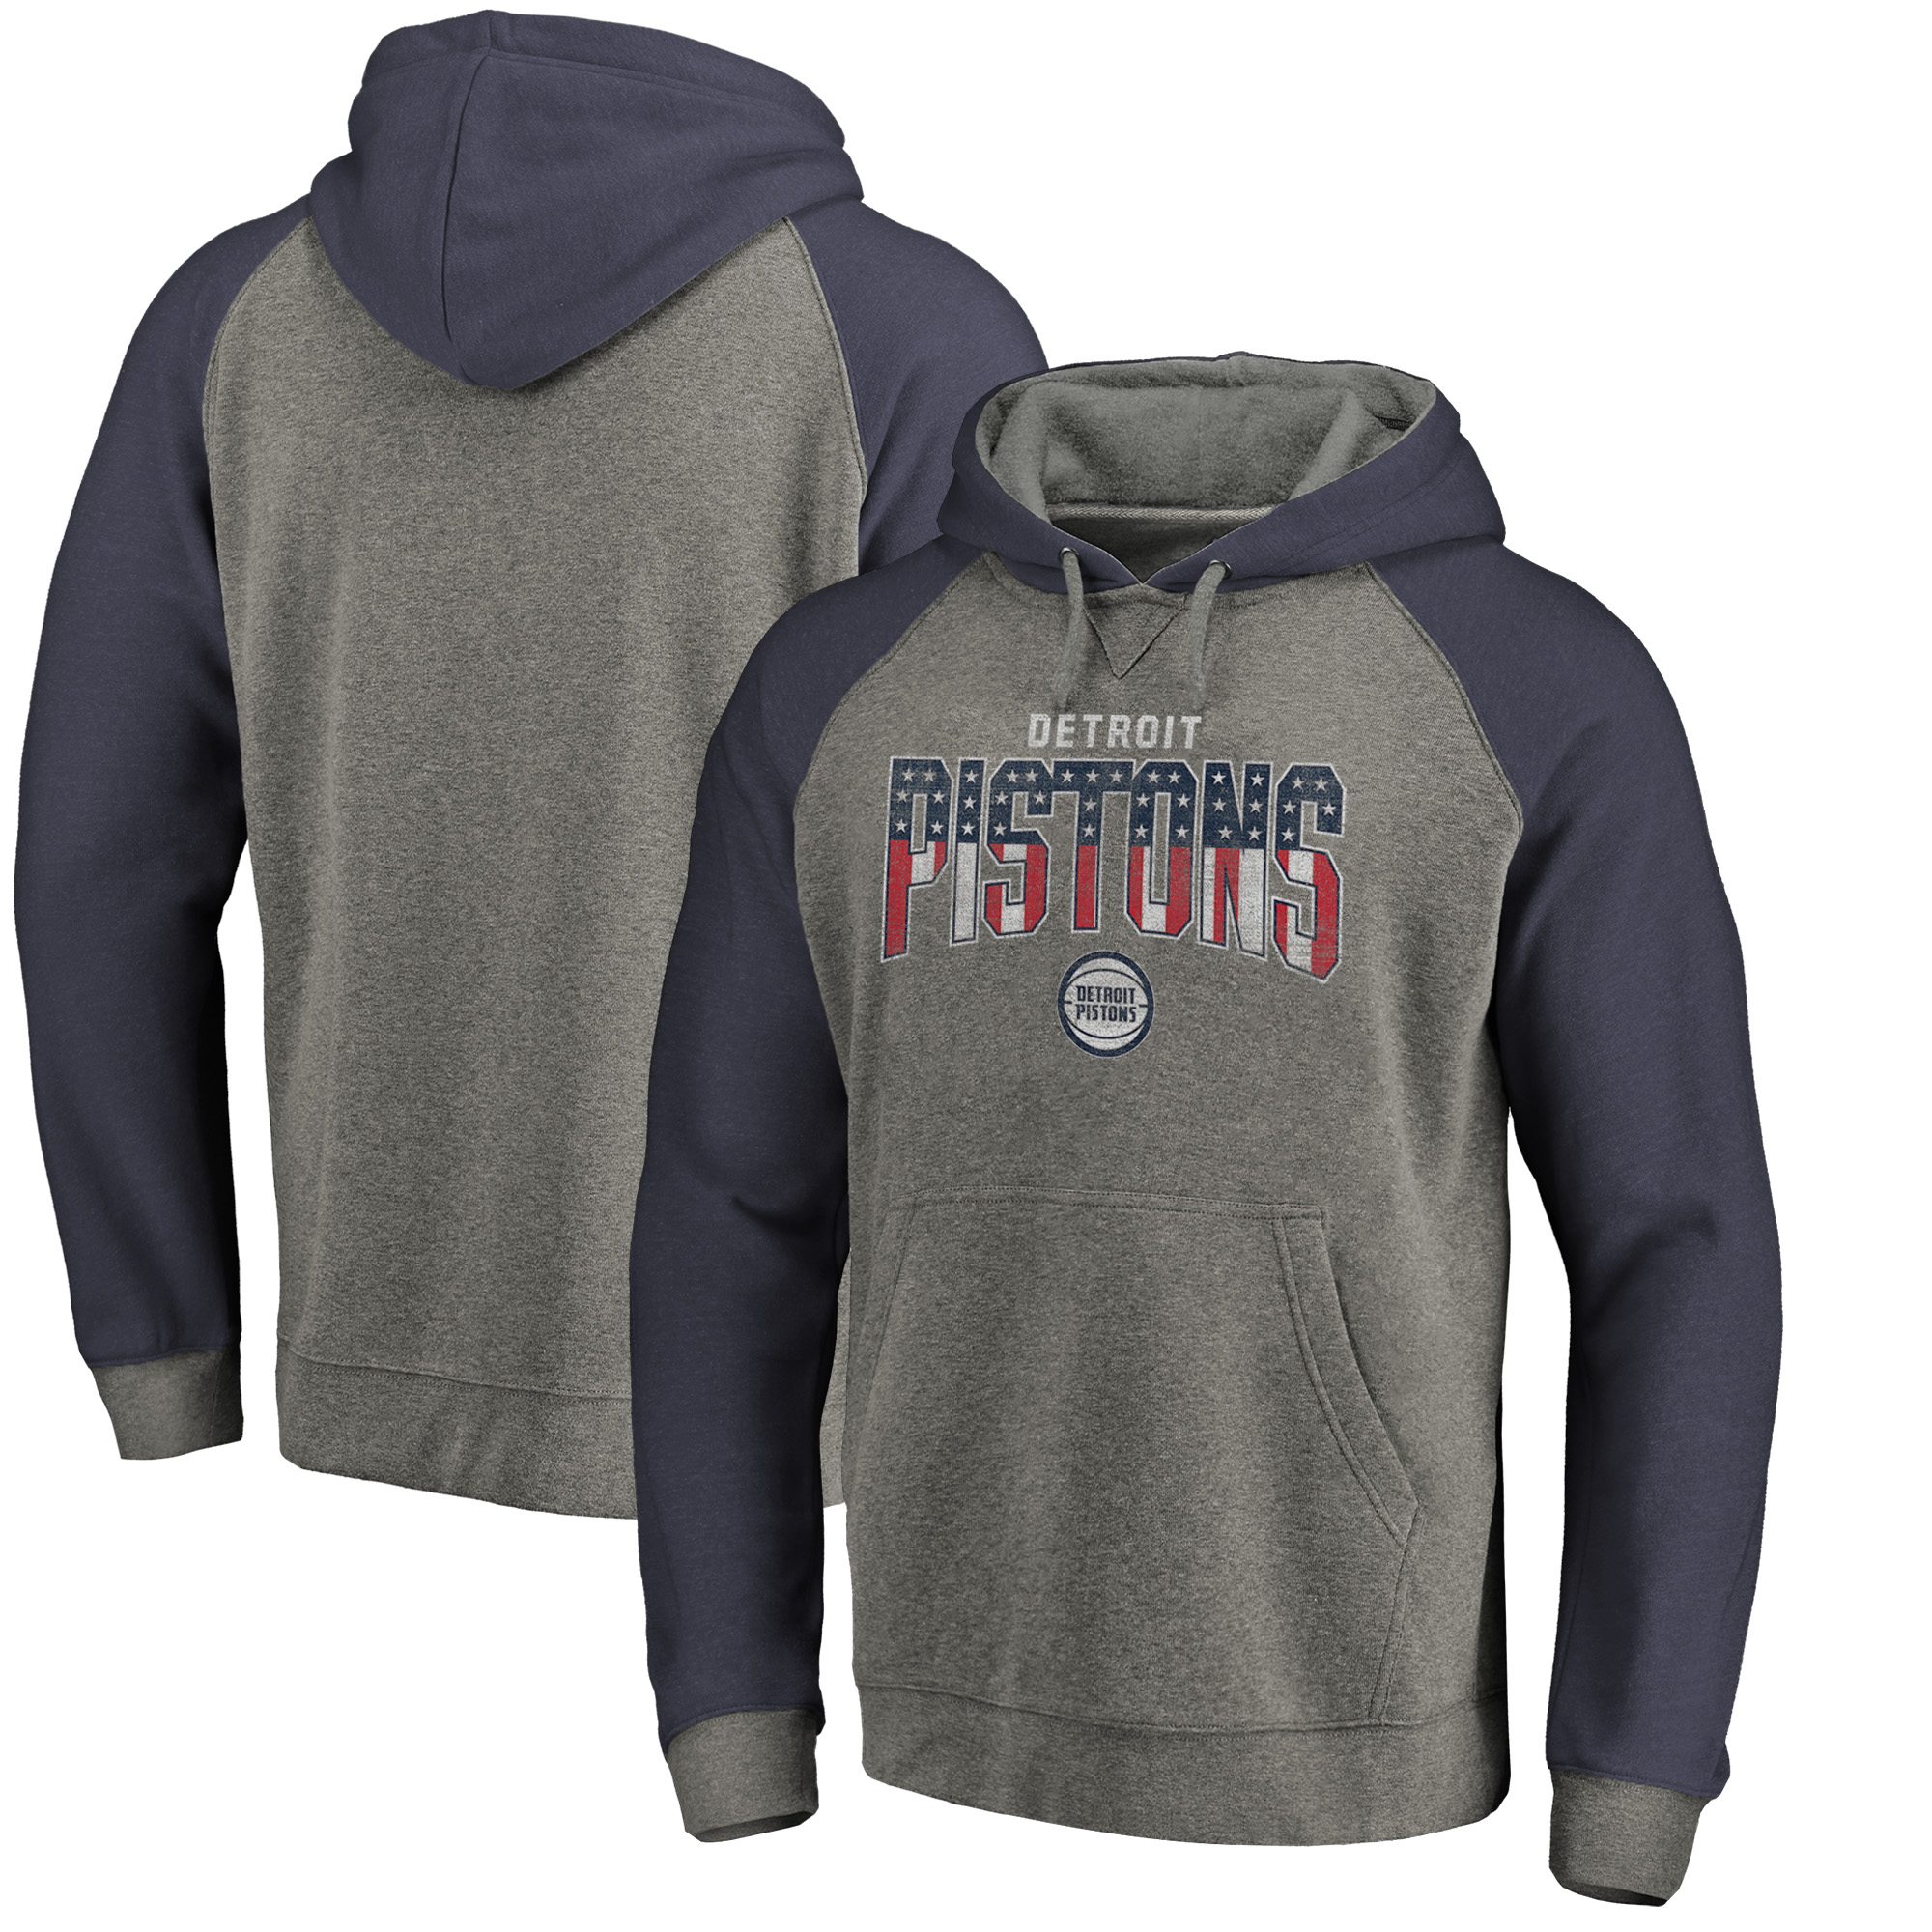 Detroit Pistons Fanatics Branded Freedom Tri-Blend Pullover Hoodie - Heathered Gray